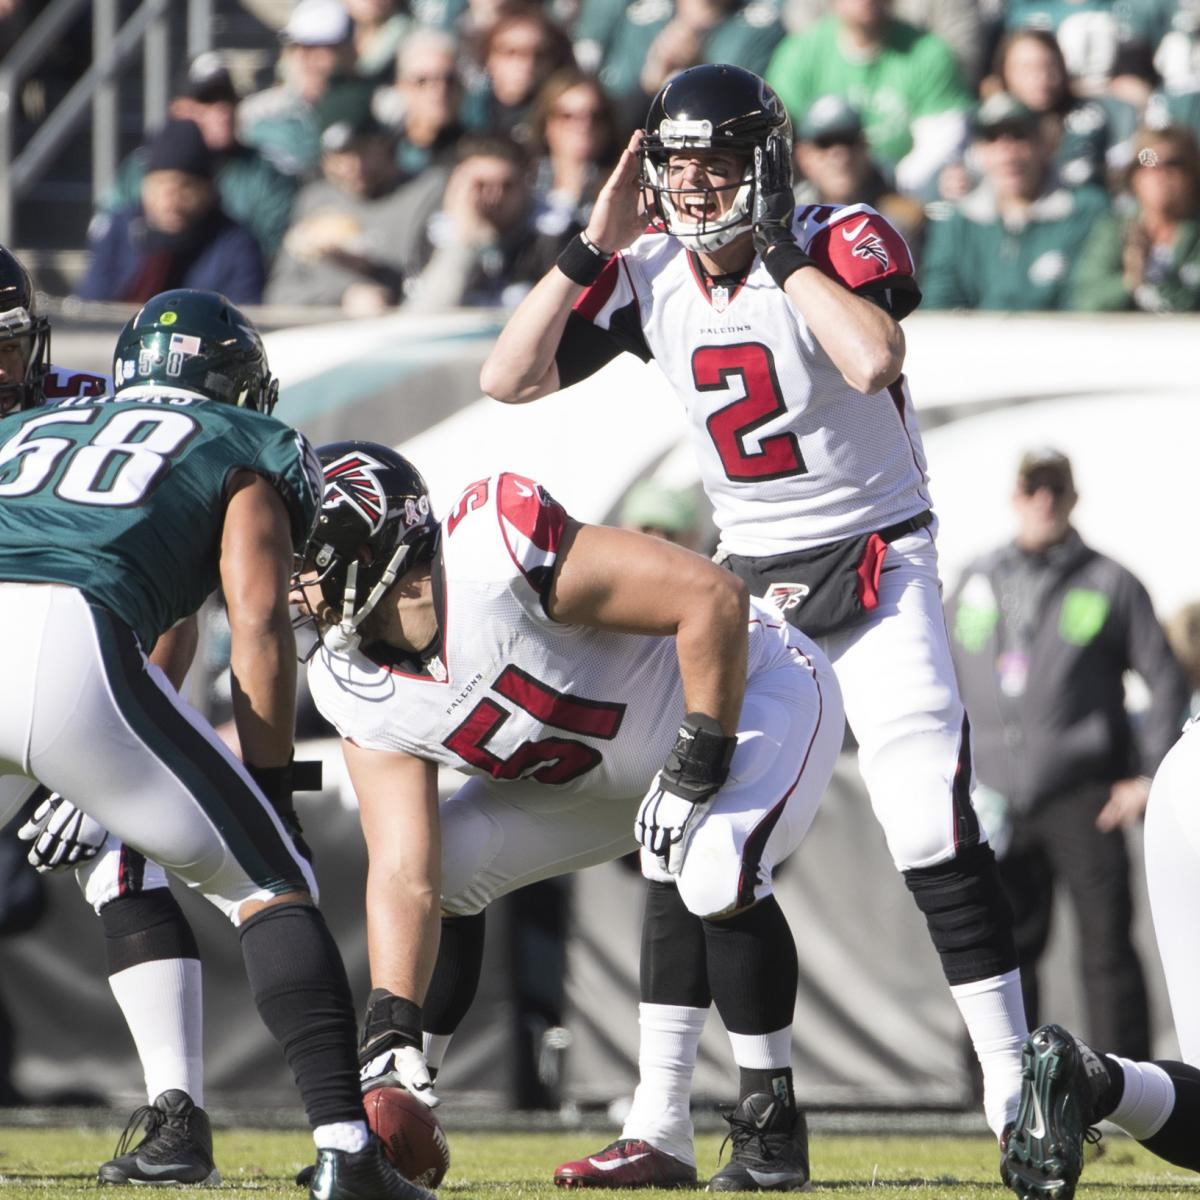 Falcons vs. Eagles: Updated Odds, Stat Predictions for 2018 NFC Divisional Game